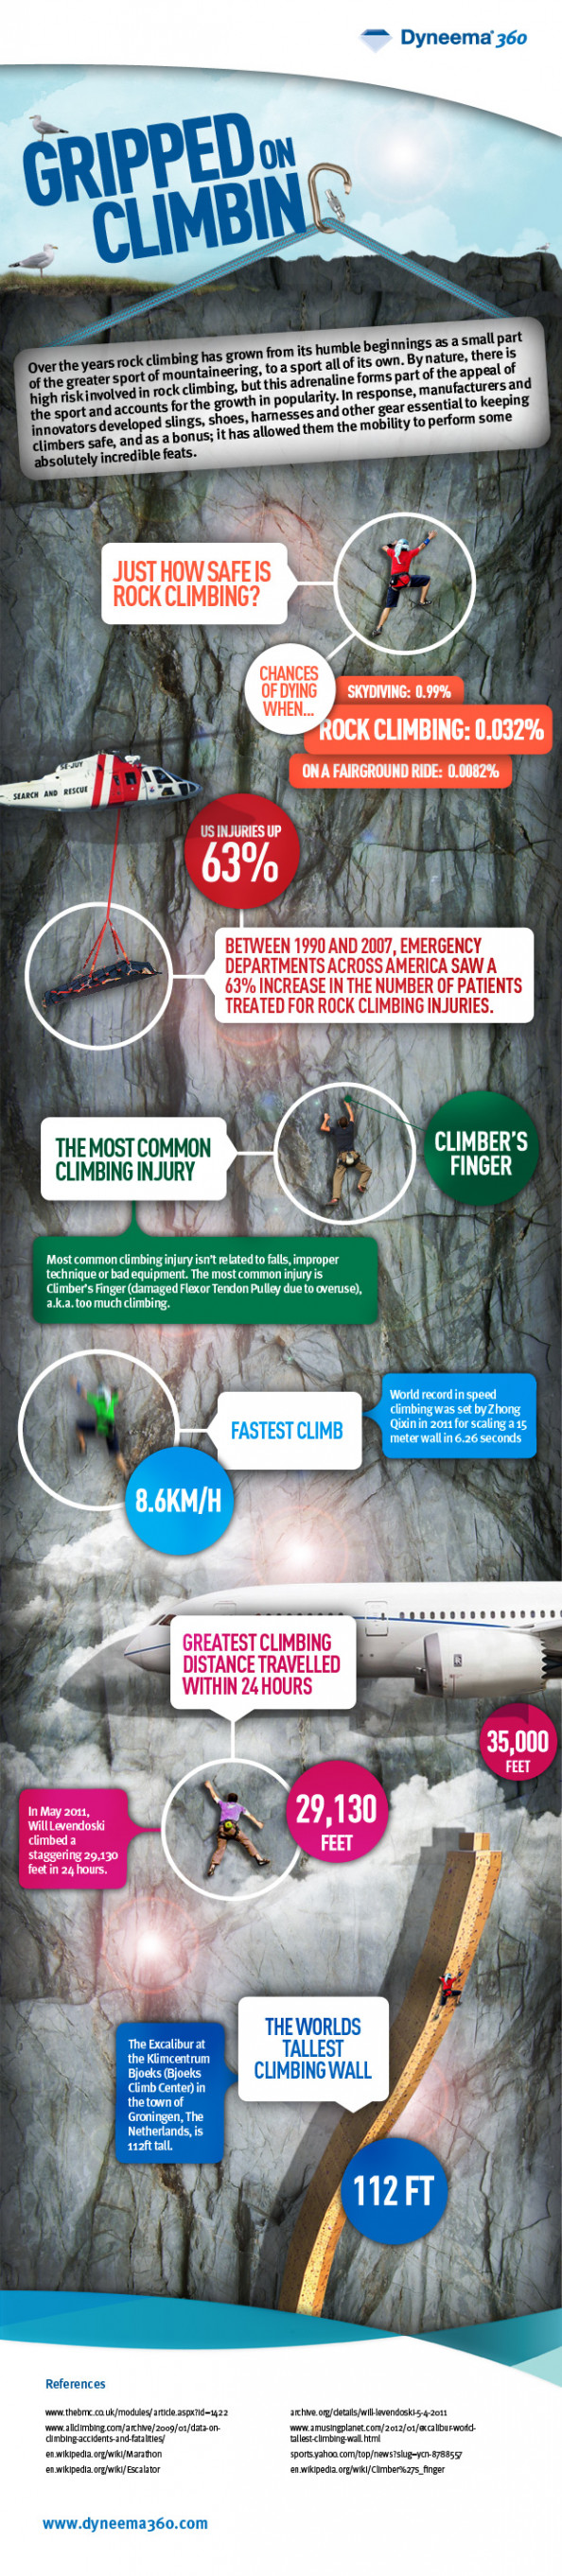 Gripped on Climbing: How Safe is Rock Climbing? Infographic